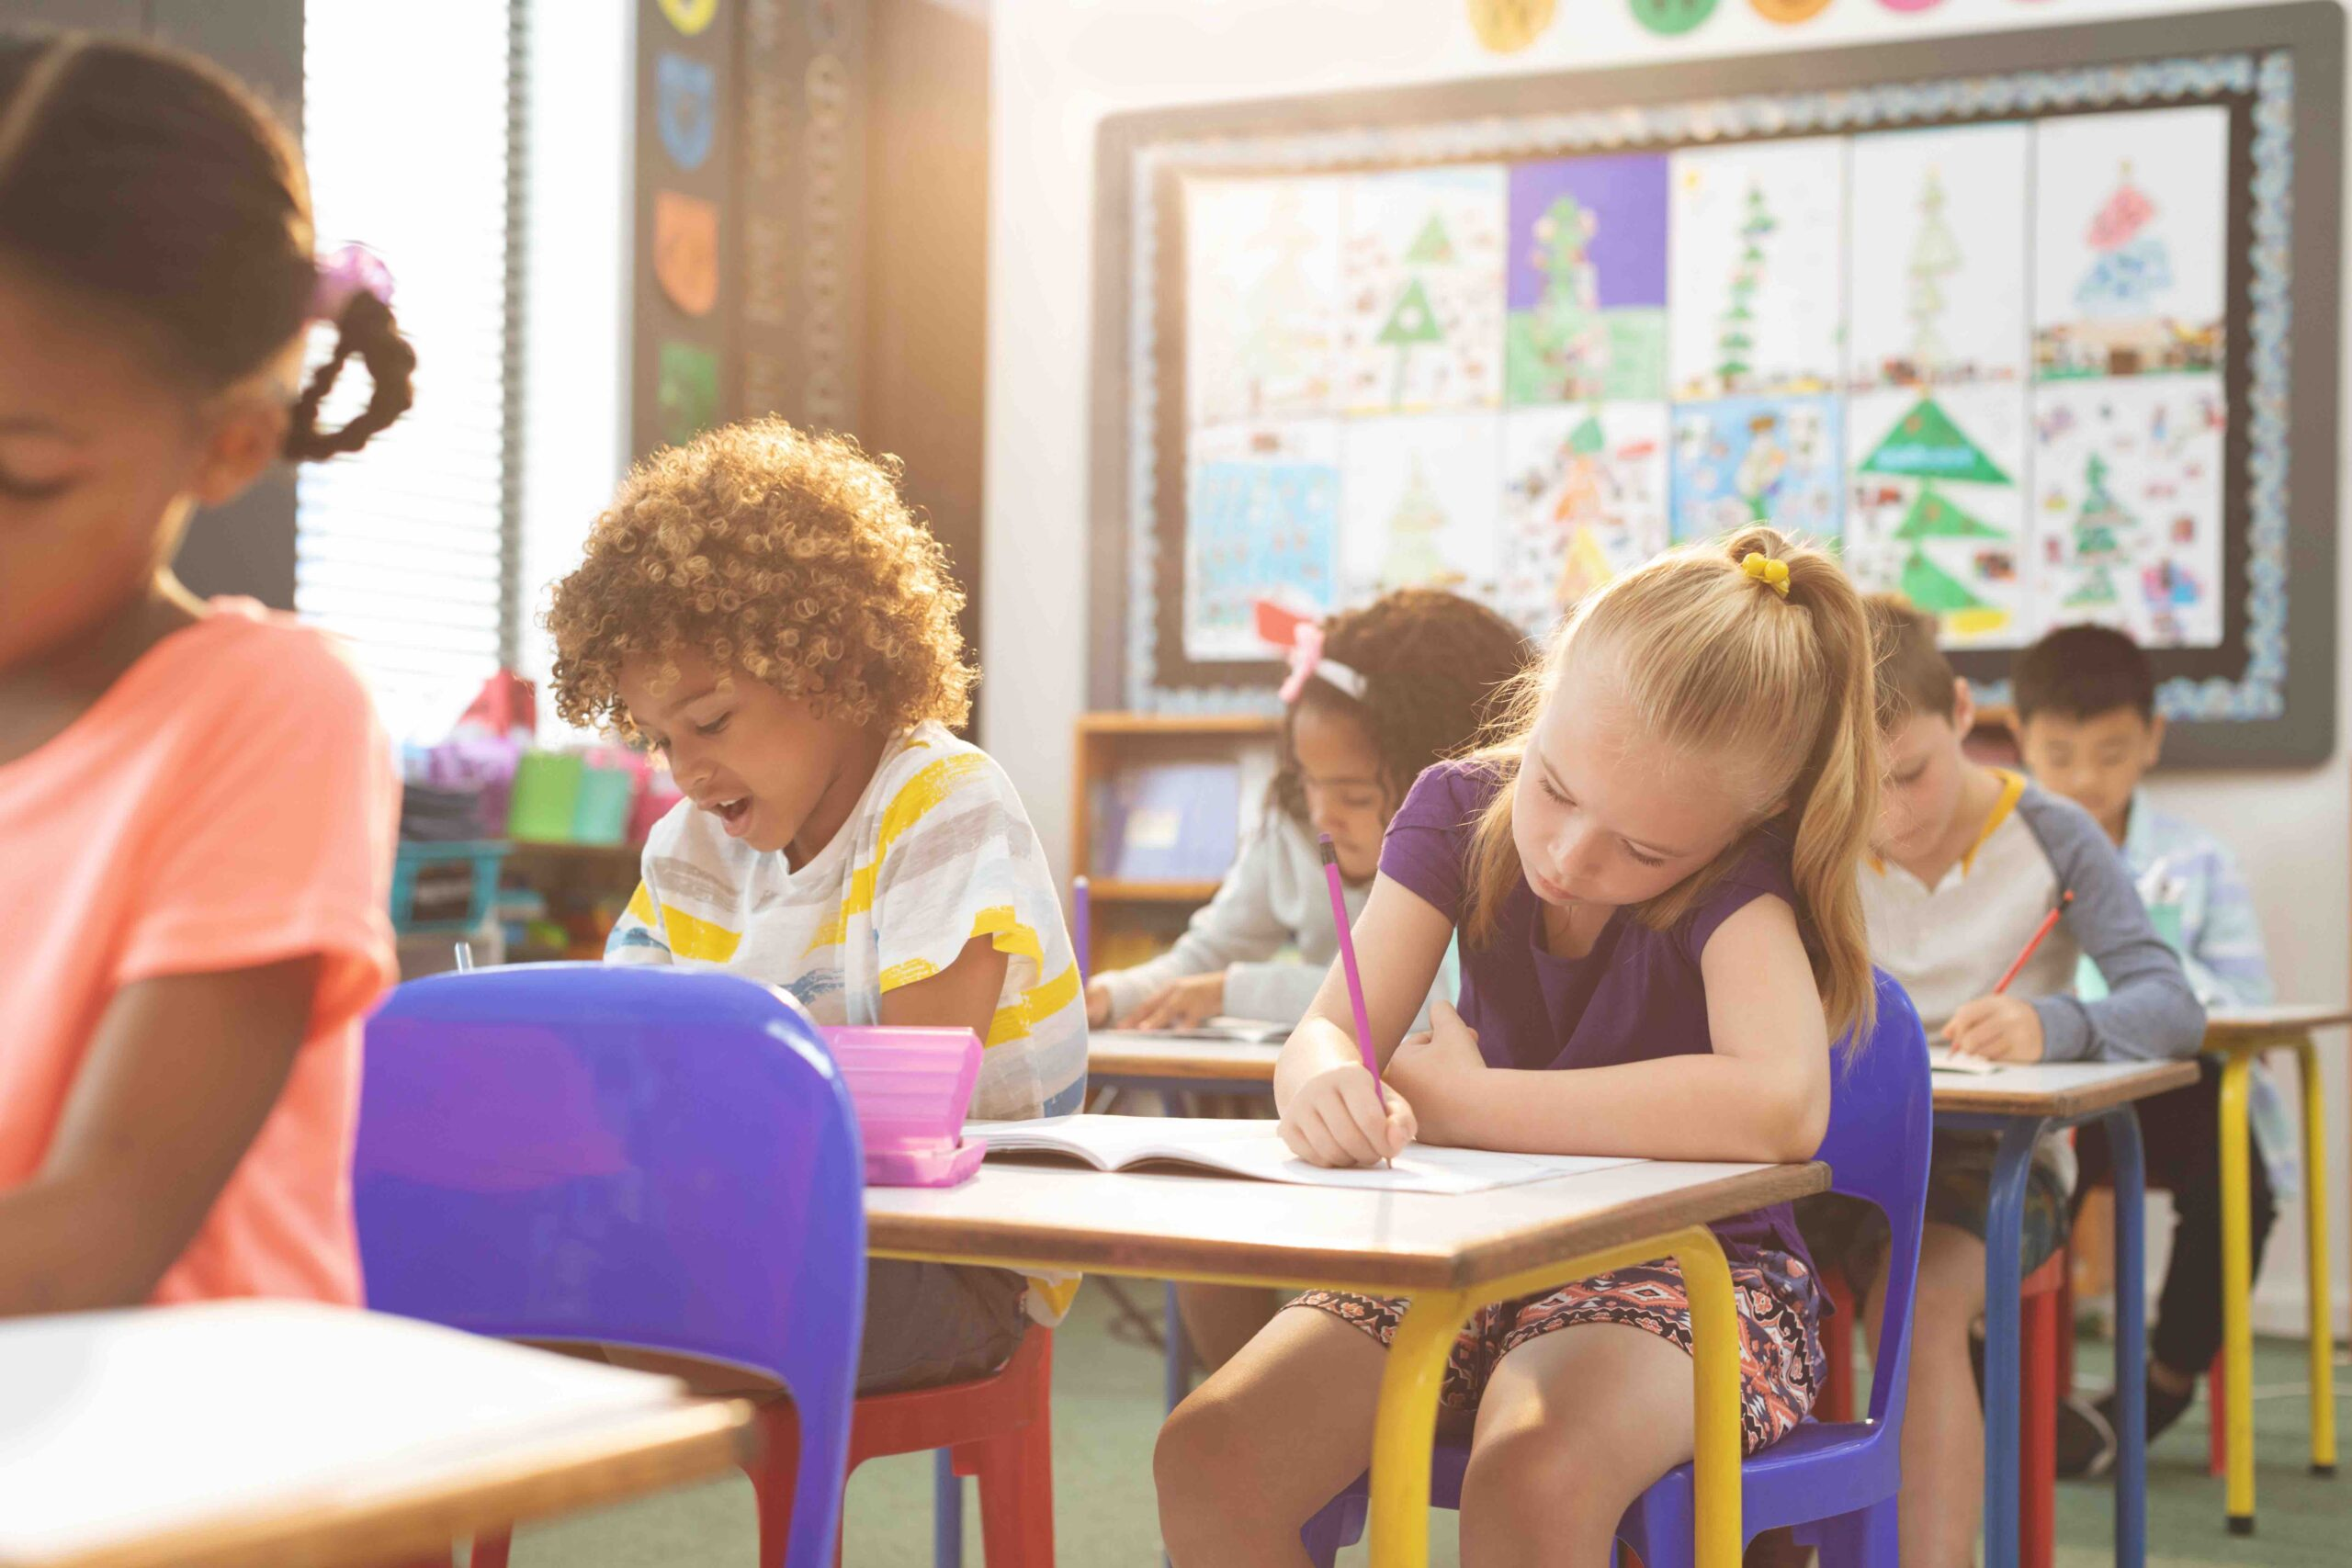 Improving a Child's Education Journey: A Conversation about K-12 Policy & Early Learning in CA Webinar